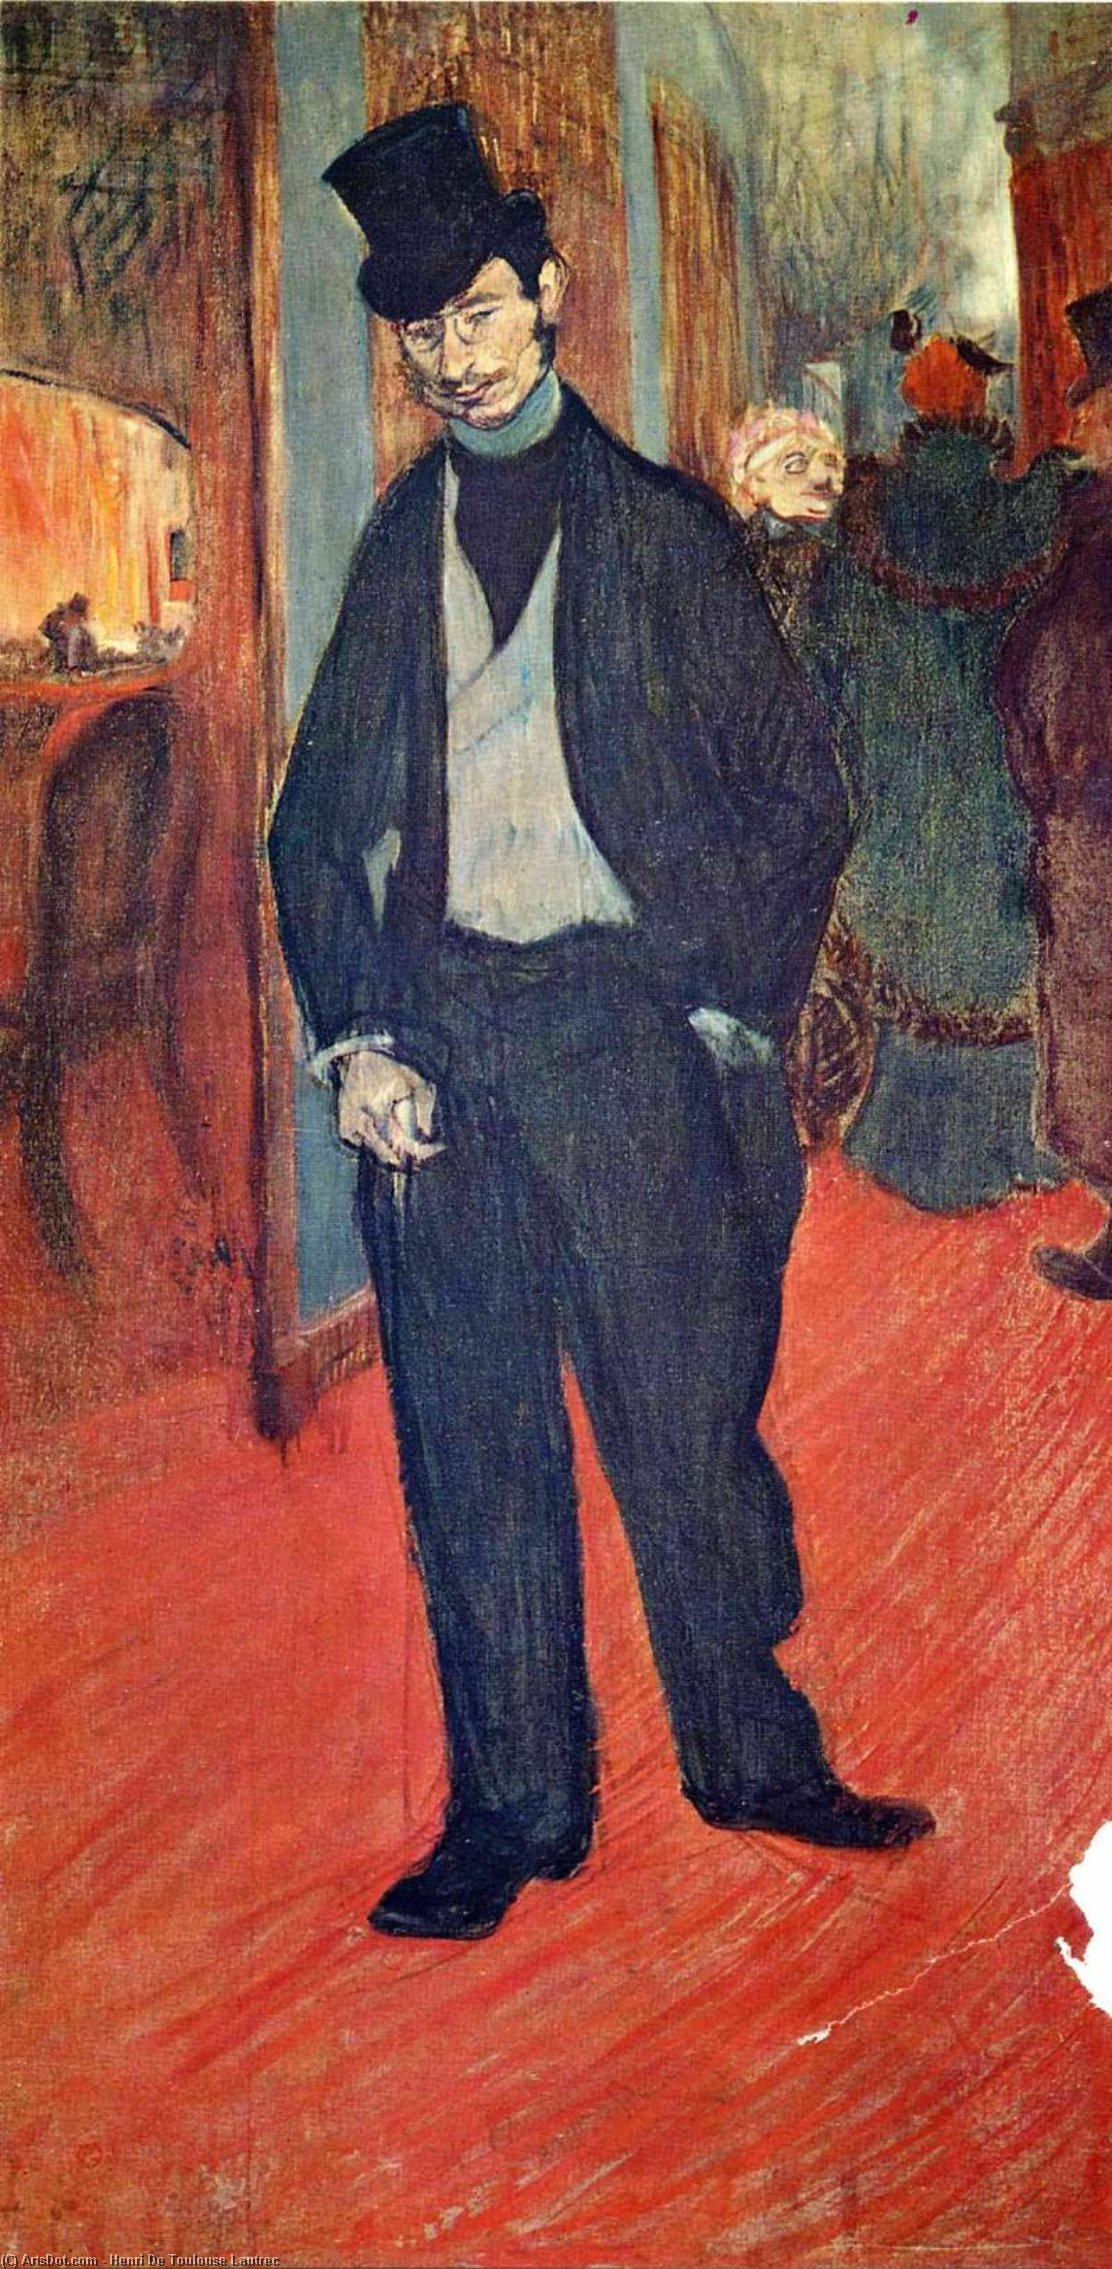 untitled (5131) by Henri De Toulouse Lautrec (1864-1901, France)